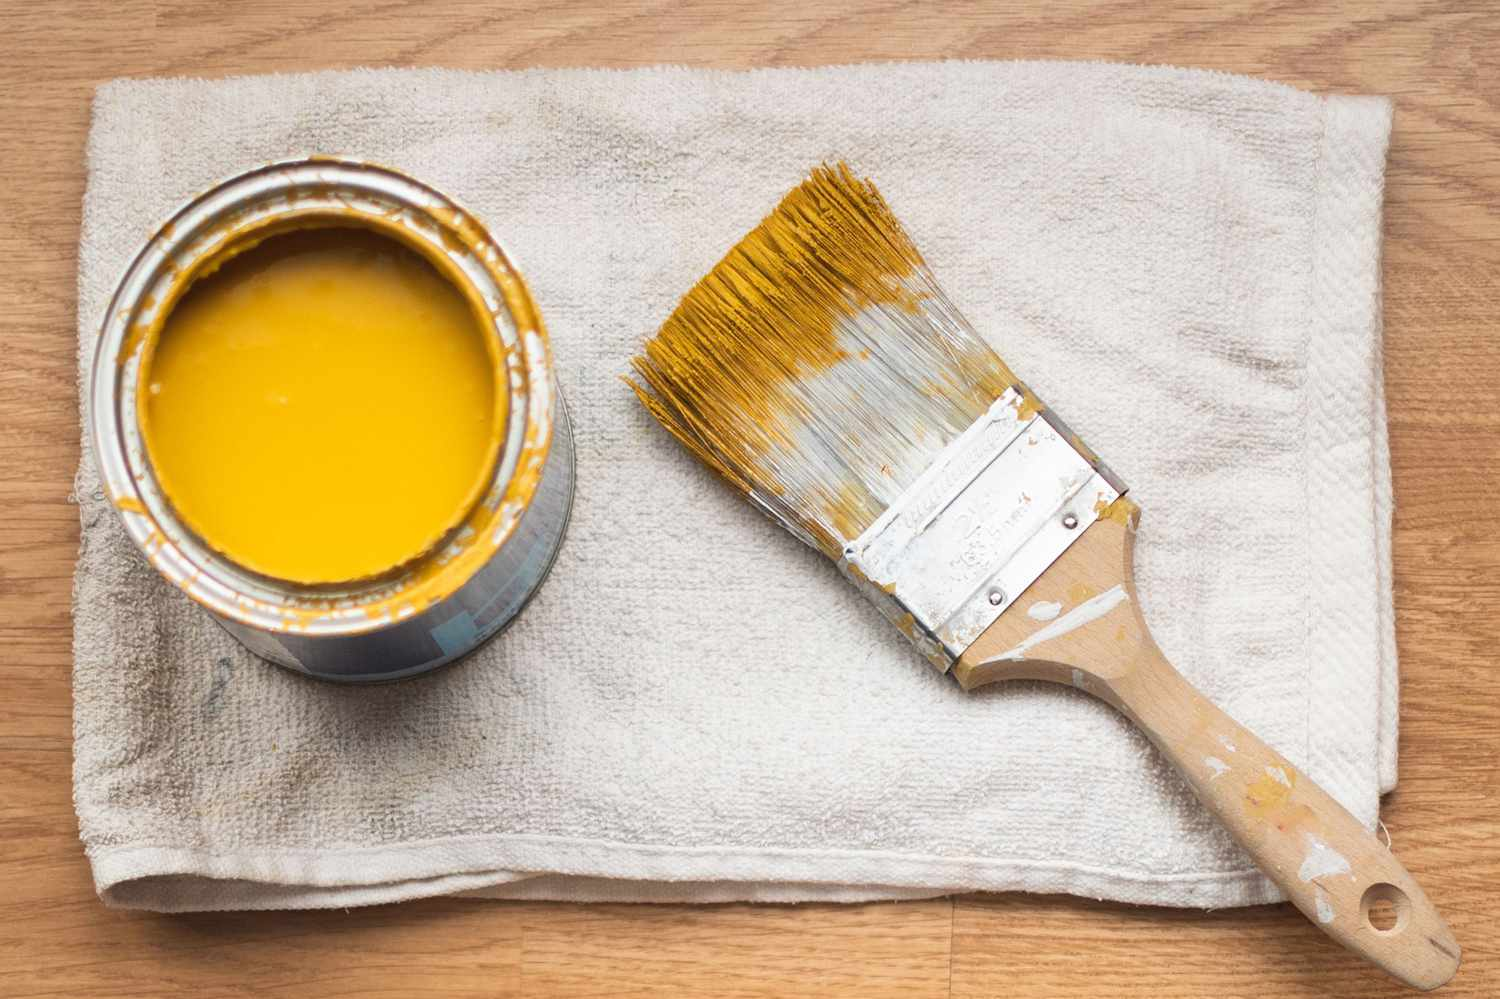 Paint bucket with yellow paint and paintbrush on white rag